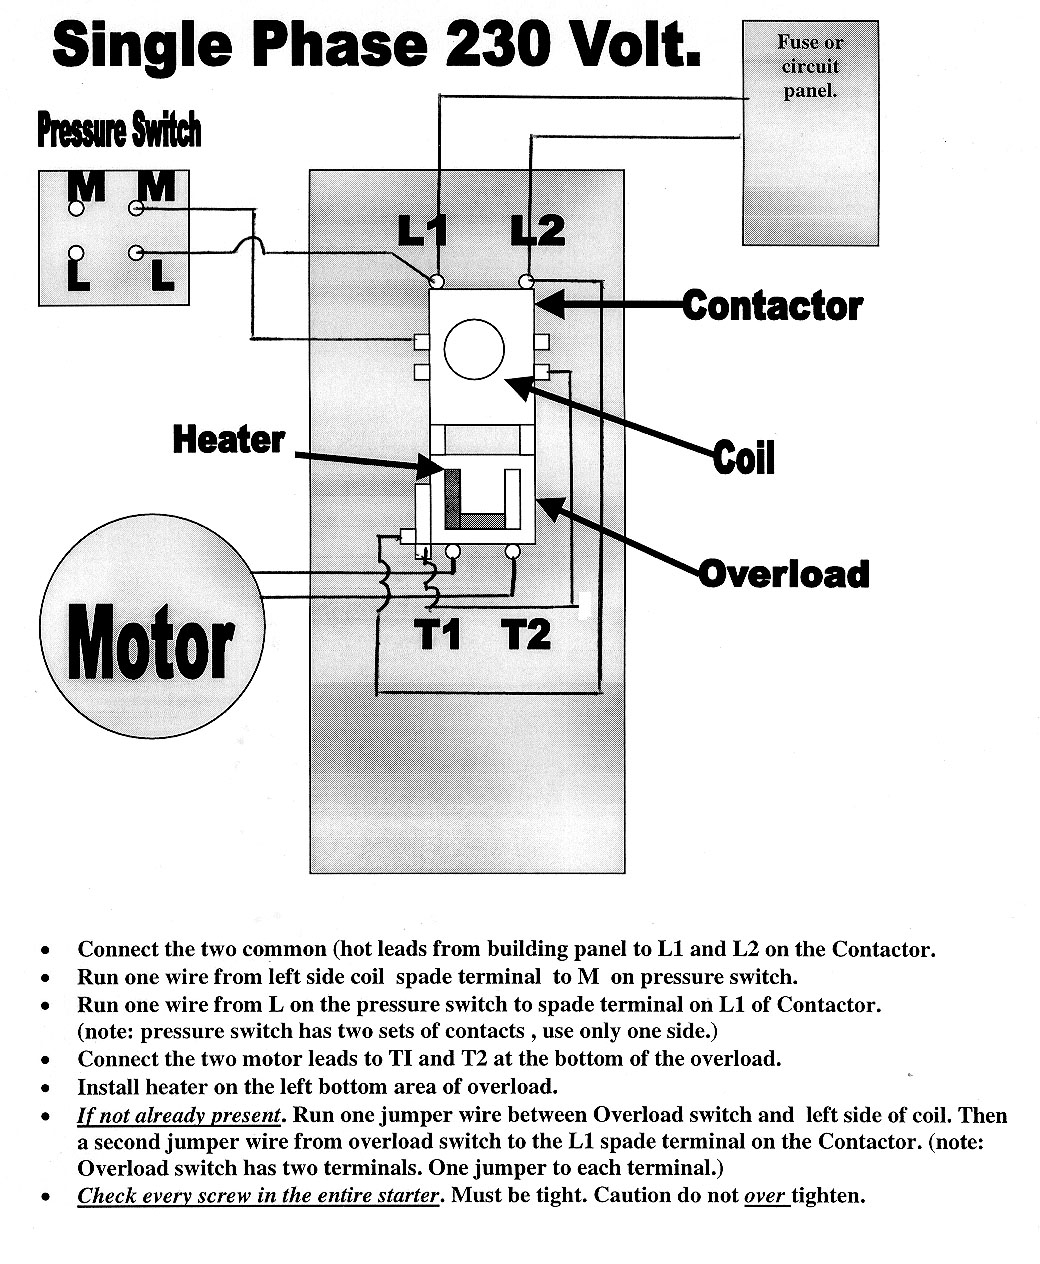 cutler hammer starter wiring diagram sample Cutler Hammer A10cn0 Wiring Diagram cutler hammer starter wiring diagram weg motor capacitor wiring diagrams schematics and baldor diagram in cutler hammer starter wiring diagram 17i